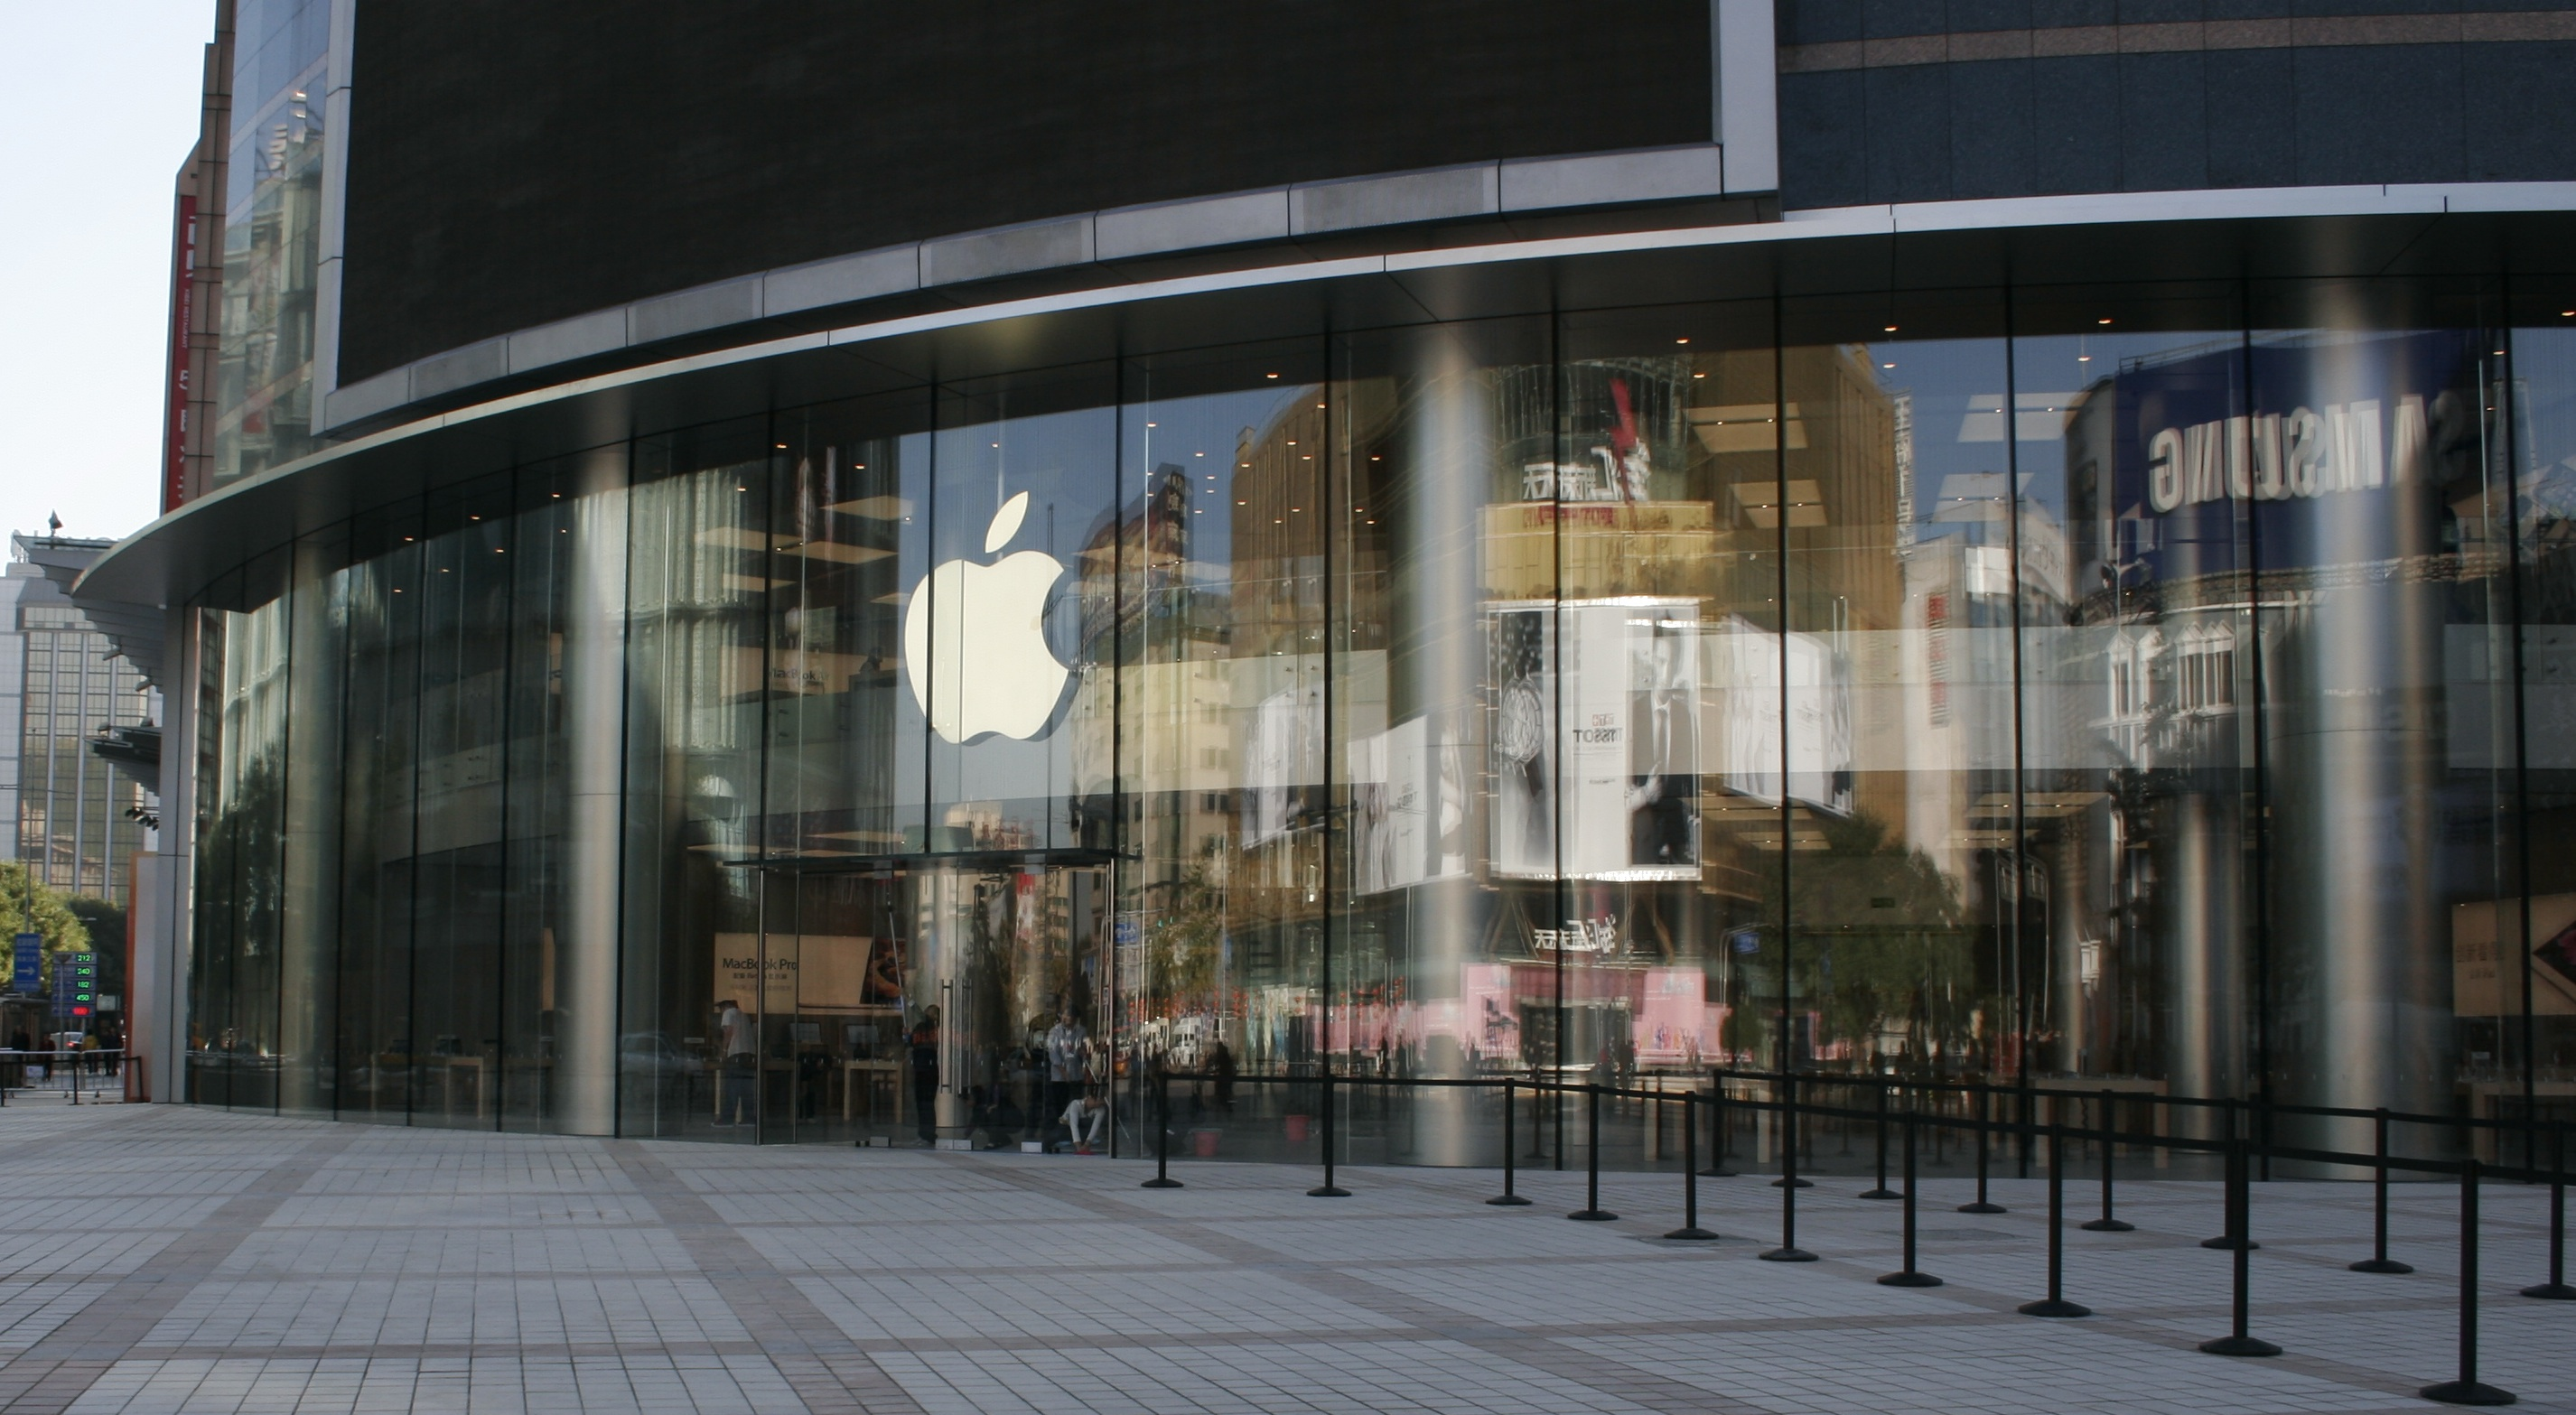 Apple awarded patent for its EasyPay in-store wireless payment technology